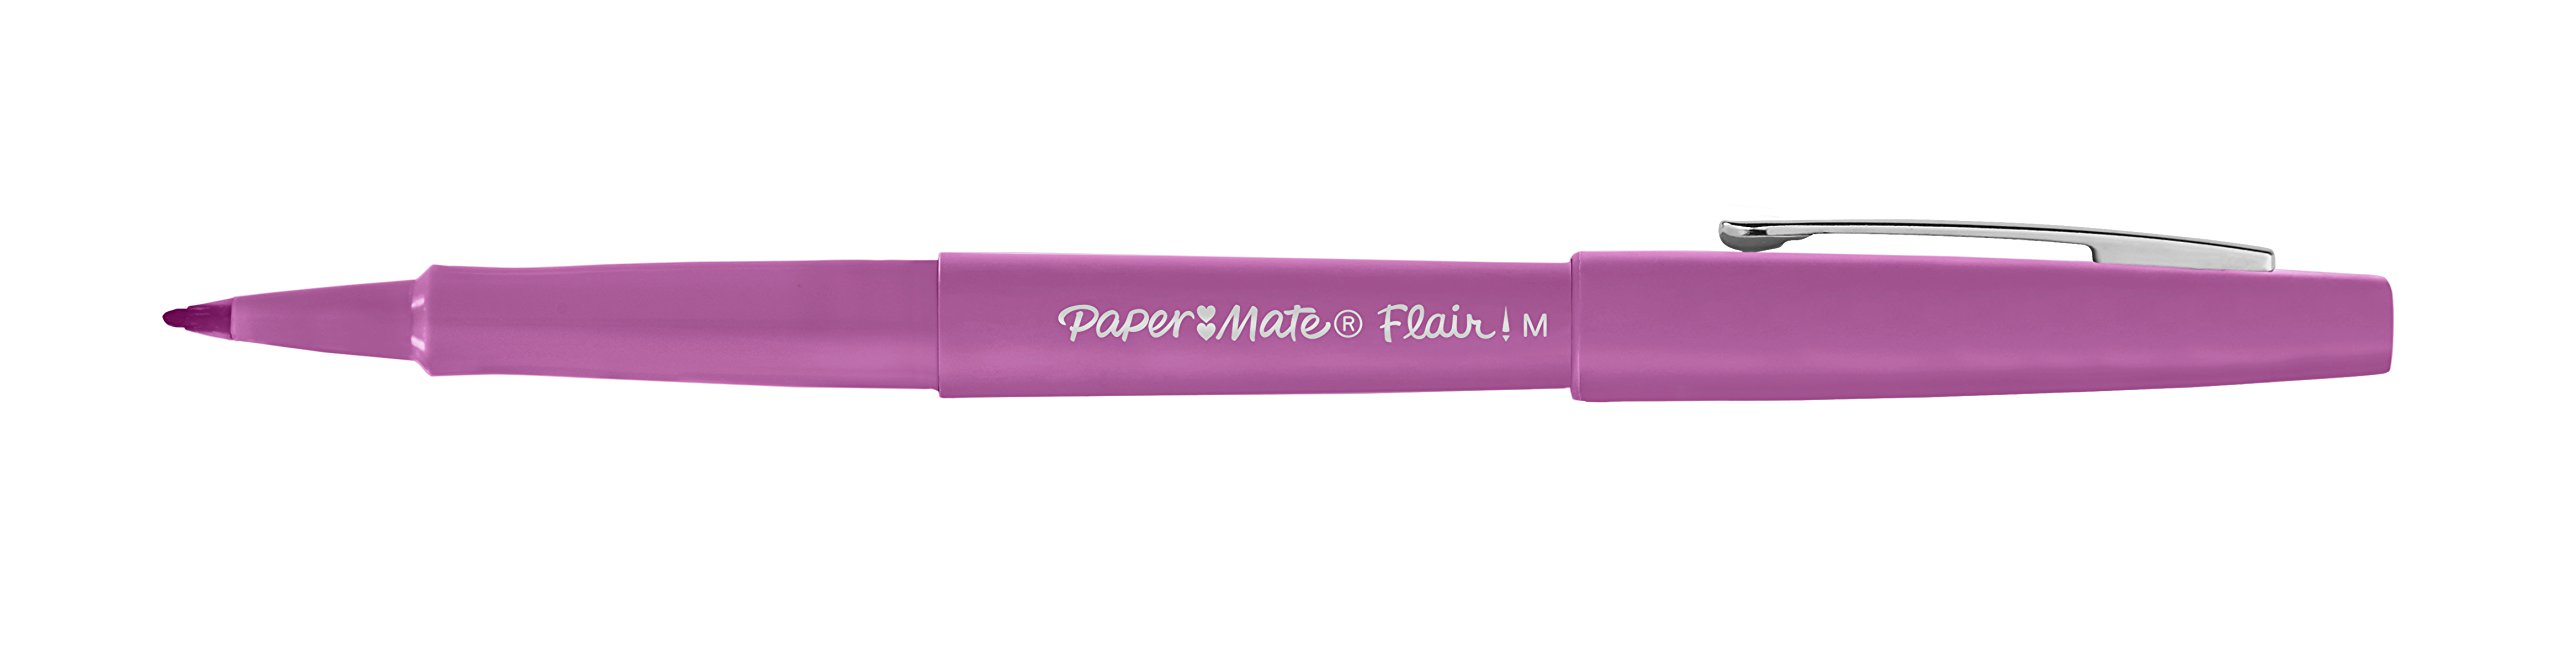 Paper Mate Flair Felt Tip Pens, Medium Point (0.7mm), Assorted Colors, 8 Count by Paper Mate (Image #3)